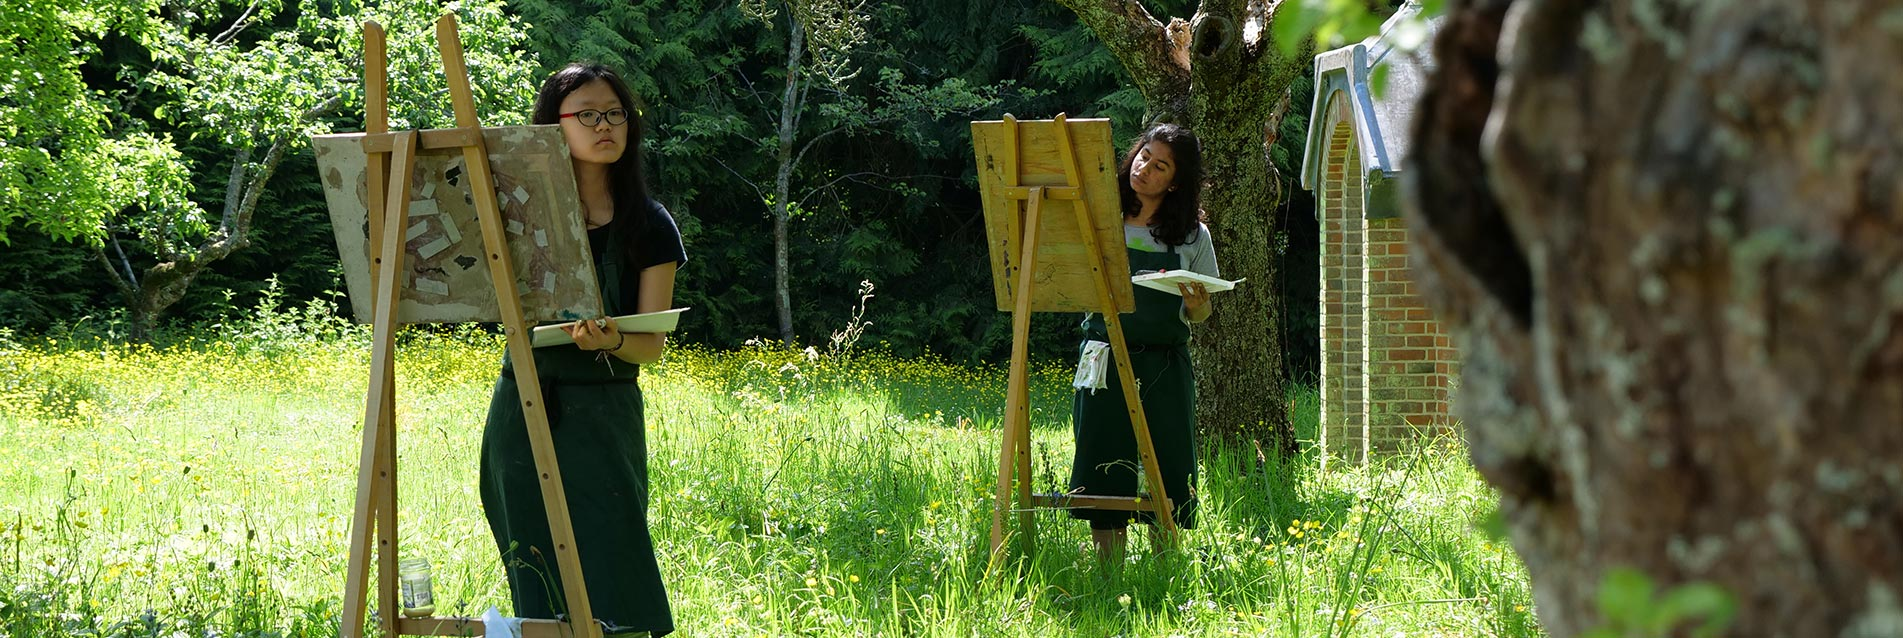 Two Brockwood Park School students painting outdoors